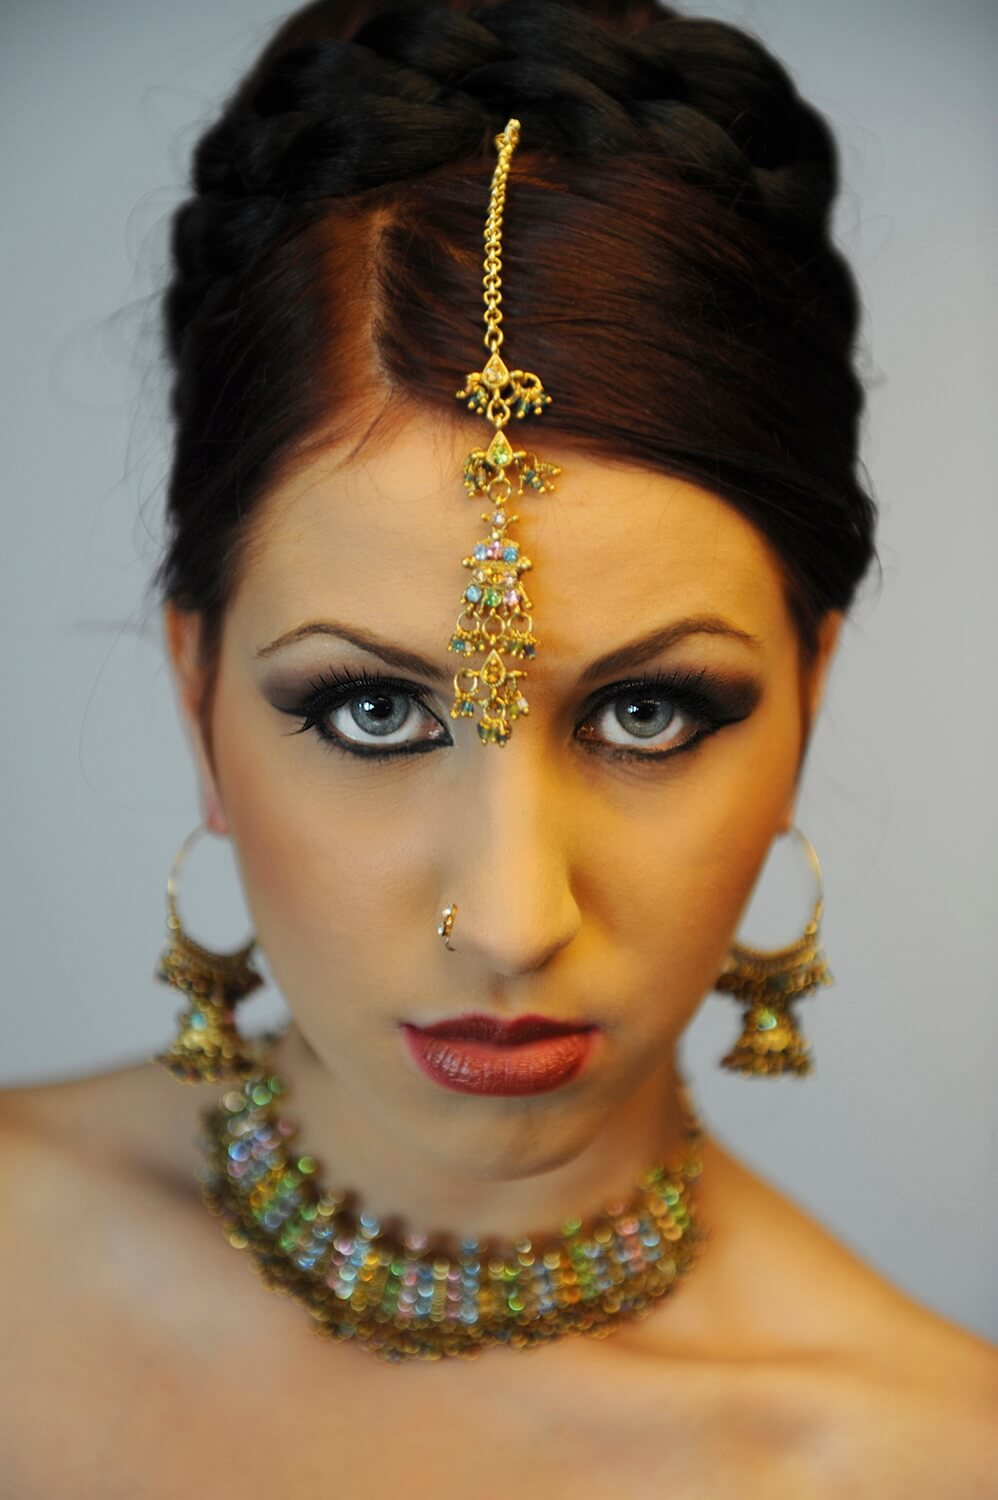 Asian fashion jewellery photography, Professional portrait photographer, powerful and emotional images, Birmingham